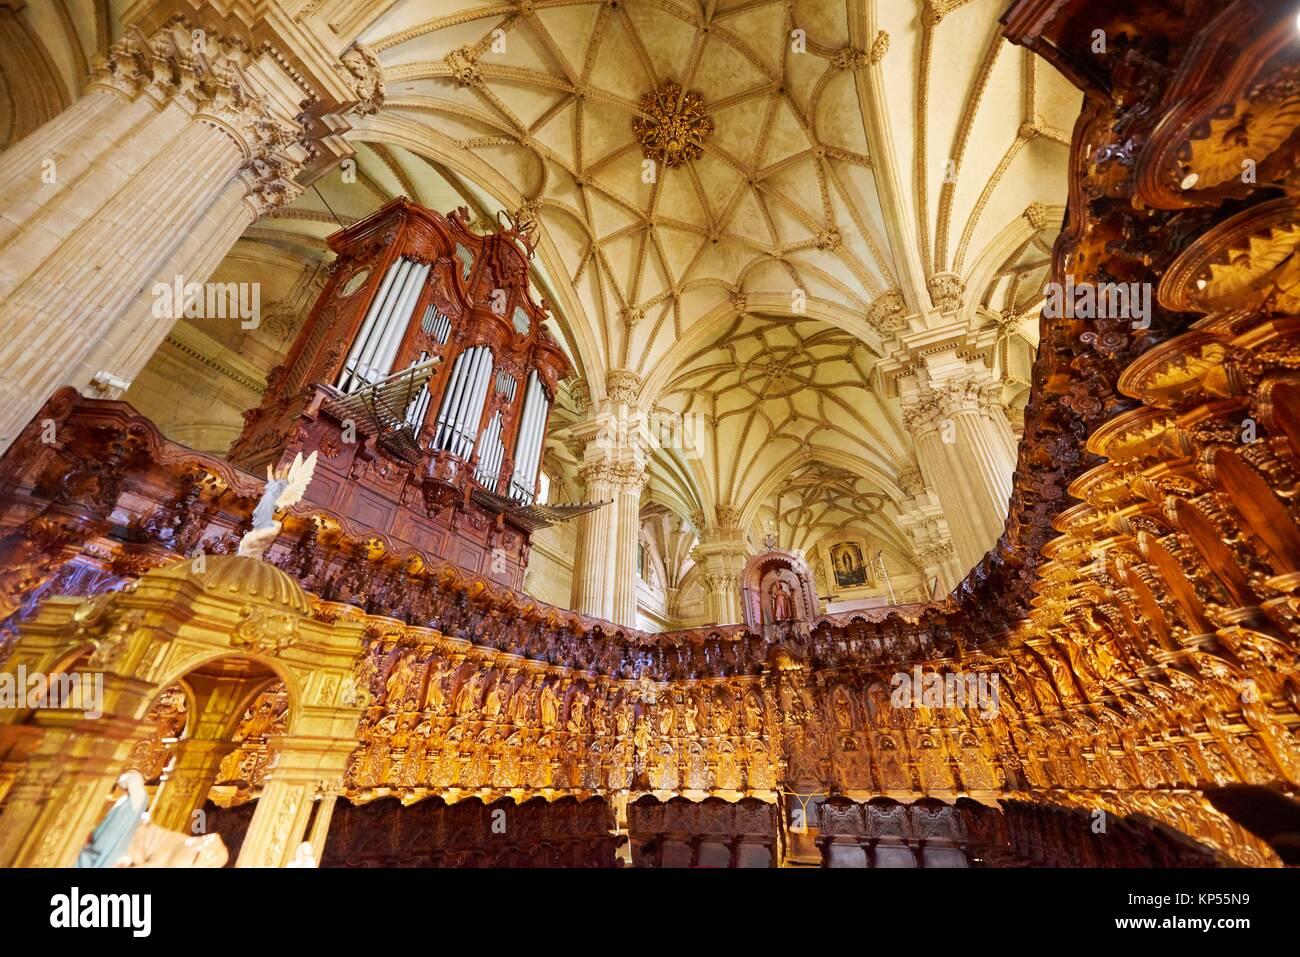 The Organ Pipe Inside of the Cathedral of Guadix province of Granada, Granada, Andalusia, Spain, Europe. - Stock Image